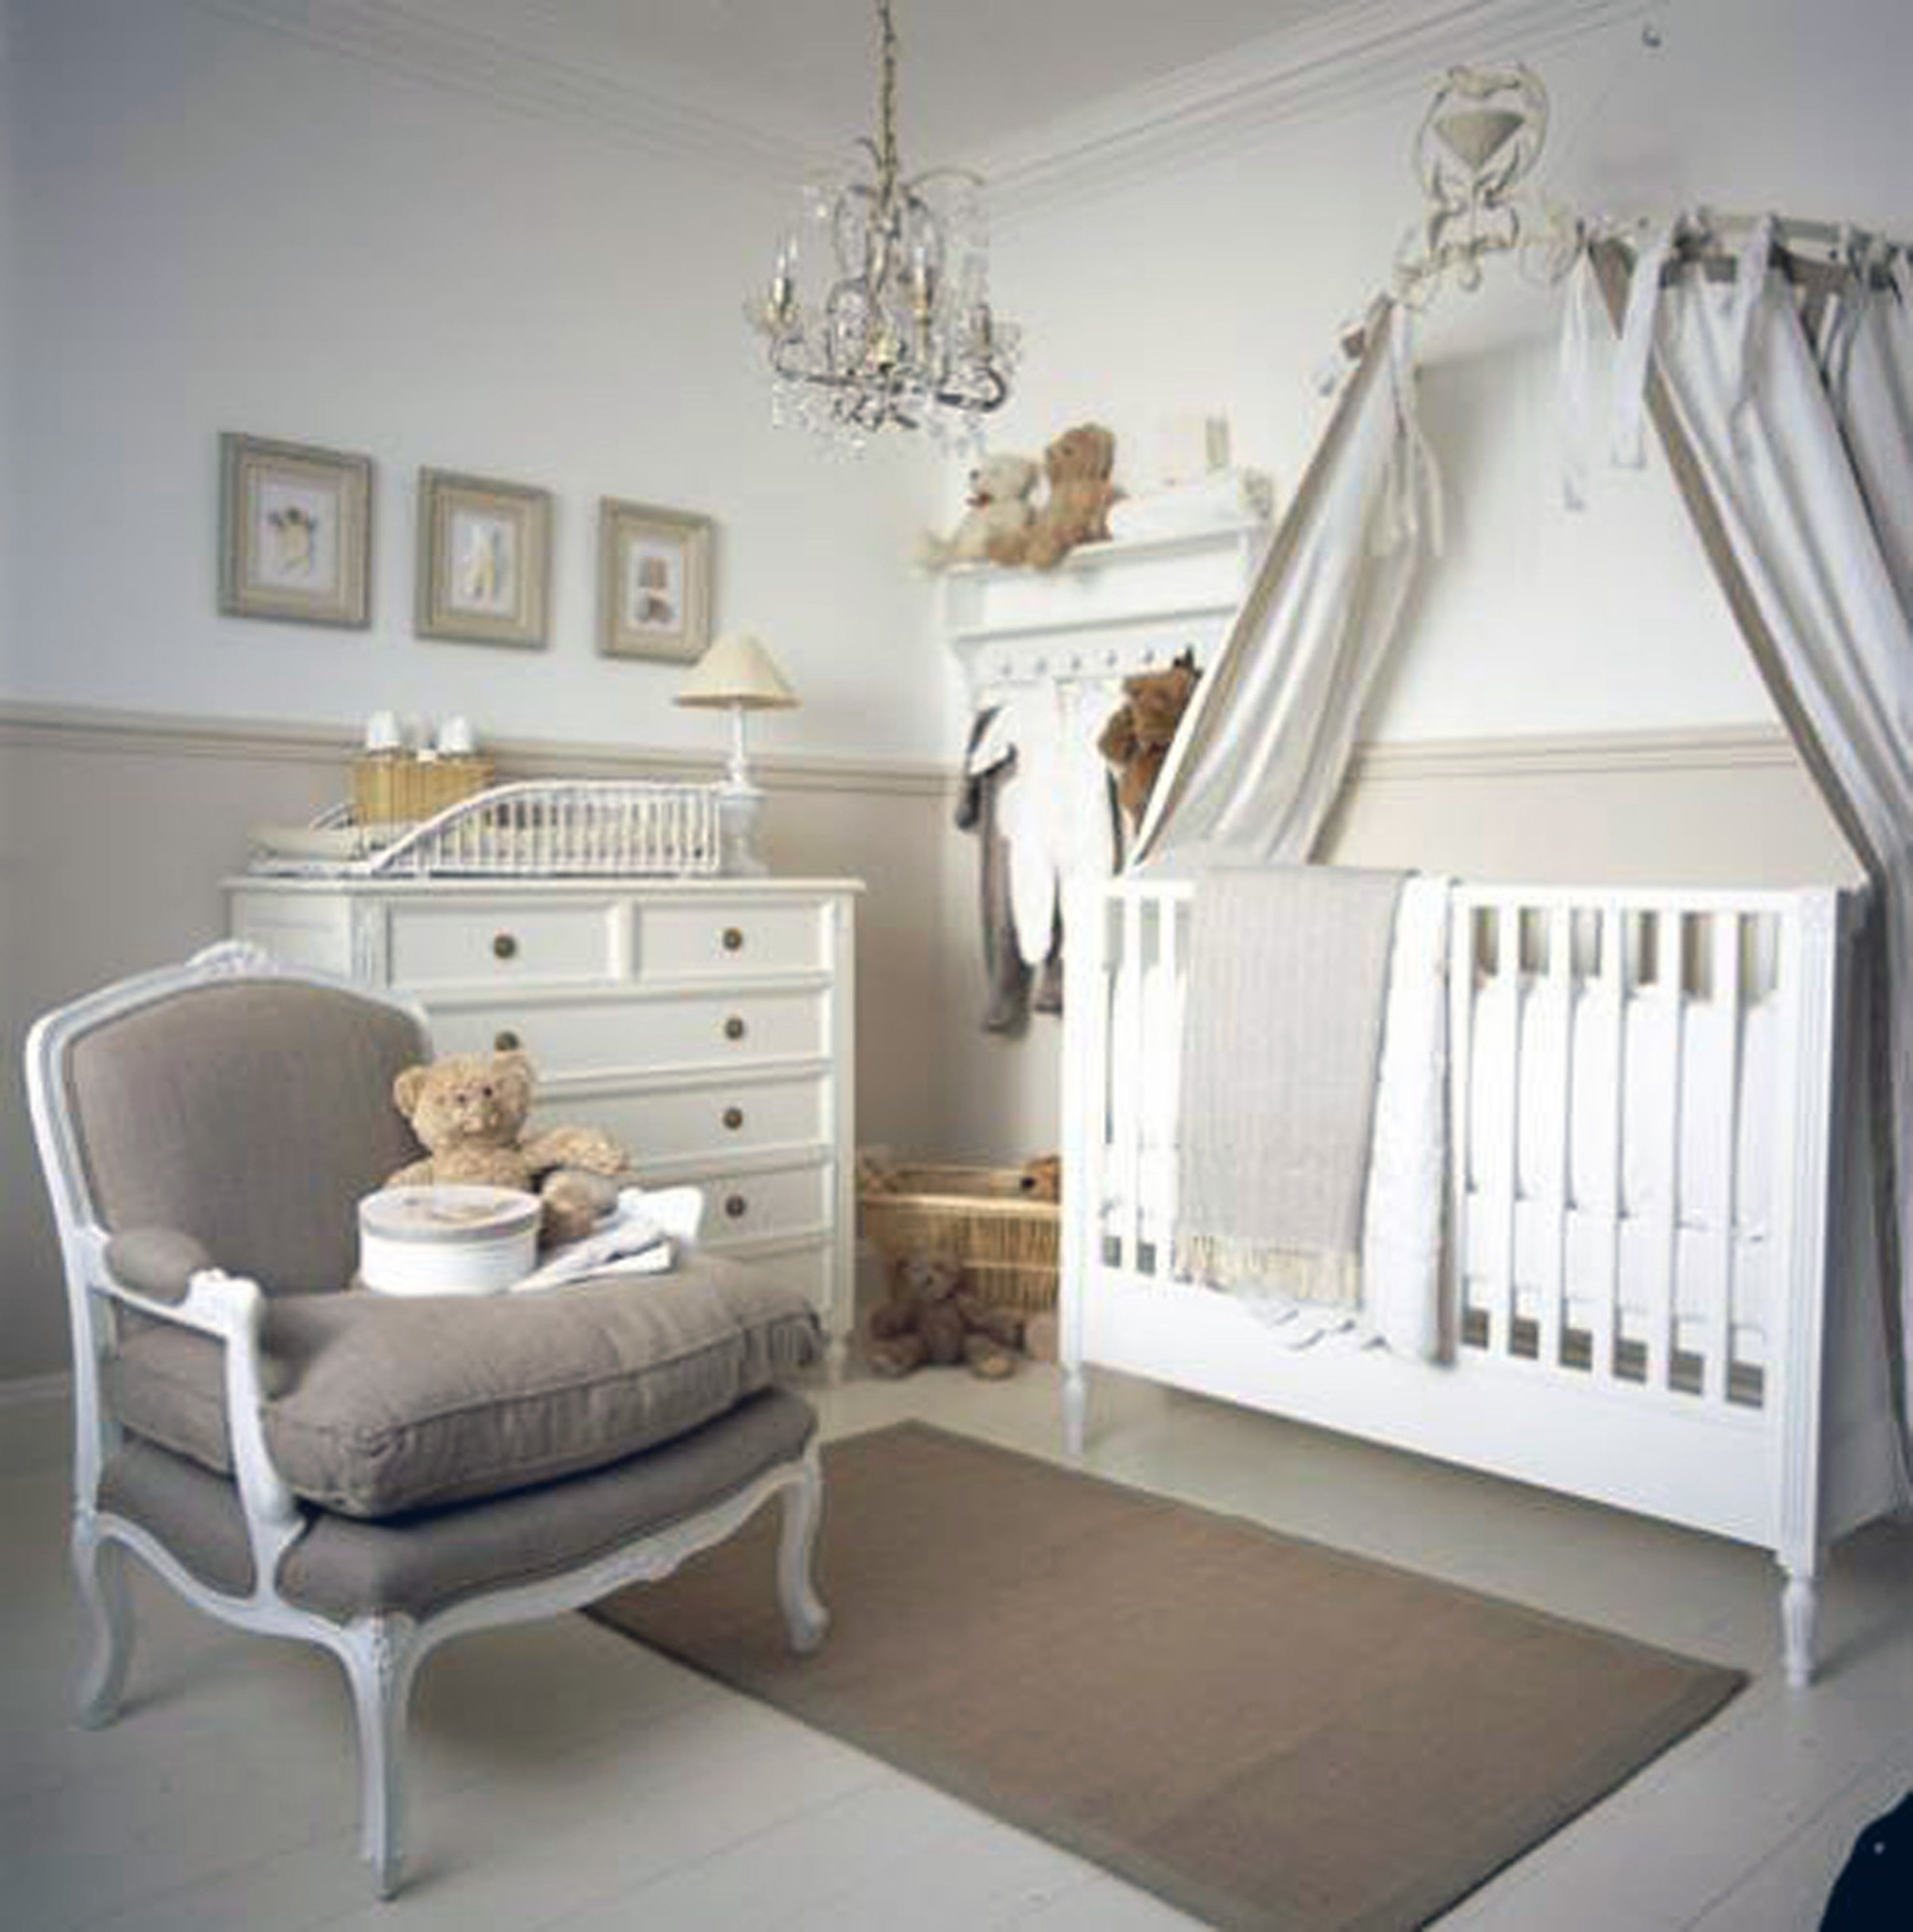 Grey and white baby room ideas - Pretty Baby Girl Nursery Room With White Crib And Pink Wall Paint Also Glass Window Geous Design Ideas Of Pink And Gray Baby Girl Nursery Ely